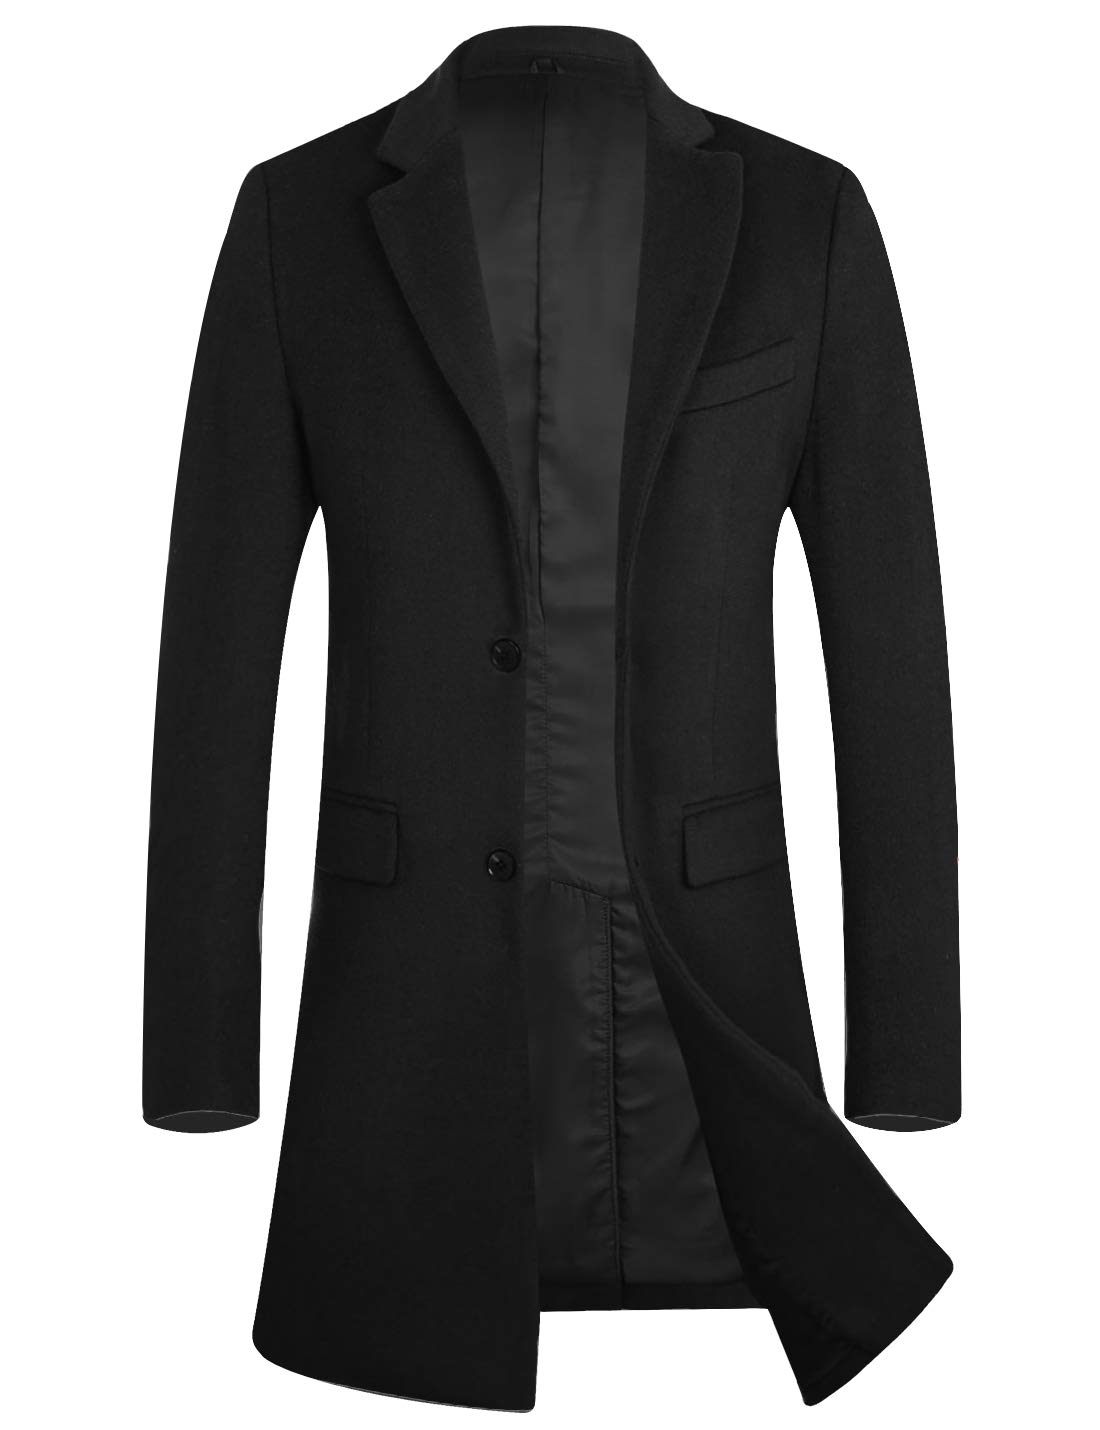 APTRO Men's Trench Wool Coat Long Gentleman Business Black Top Coat